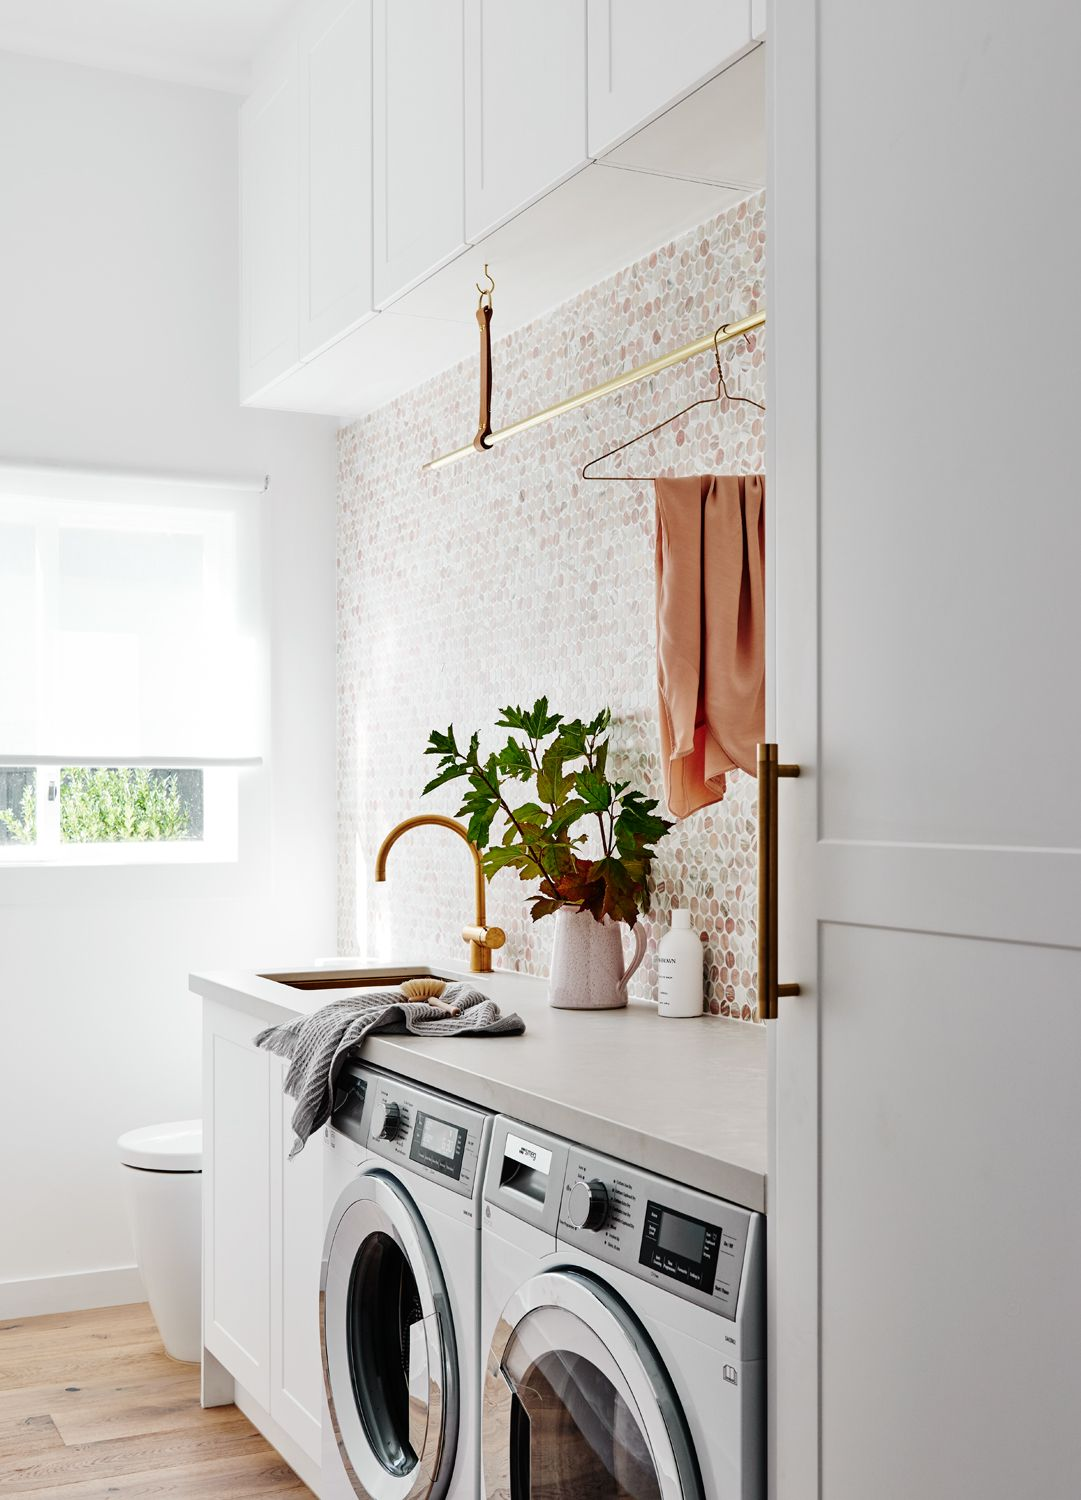 the norsuhome laundry photographer lisa cohen stylist beck simon paint dulux vivid white on kaboodle kitchen microwave id=82804